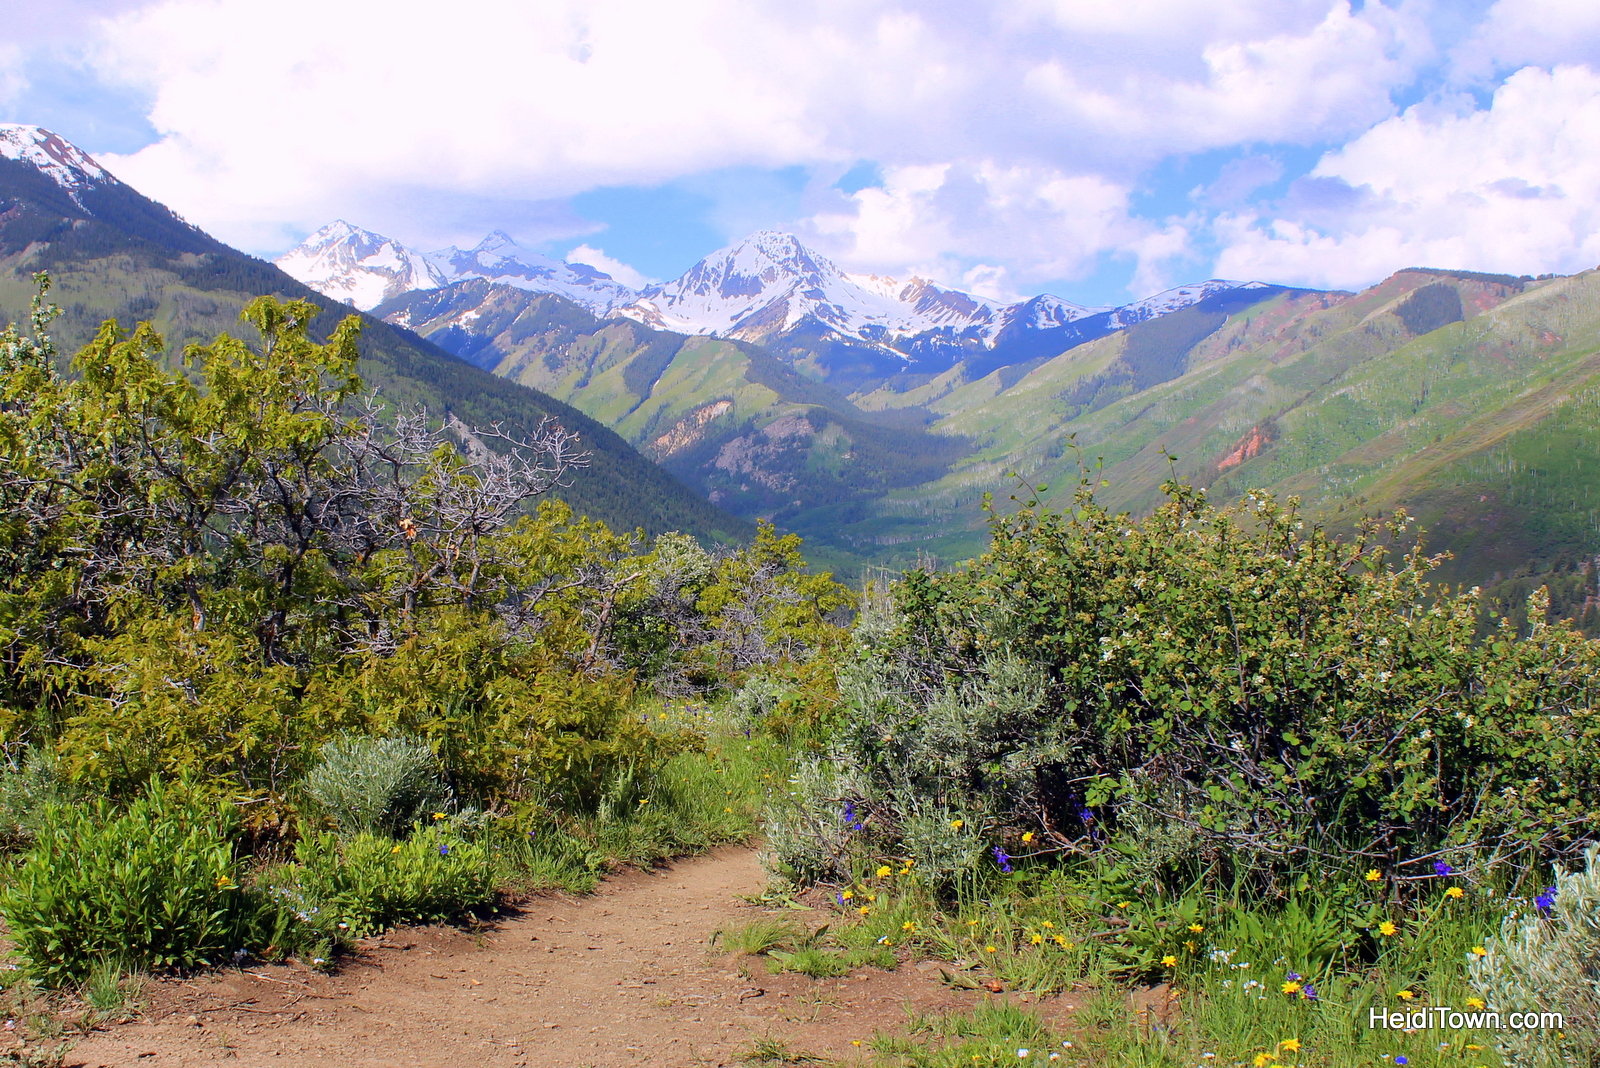 Top 10 HeidiTown Highlights of 2015. The Rim Trail Loop in Snowmass, Colorado.